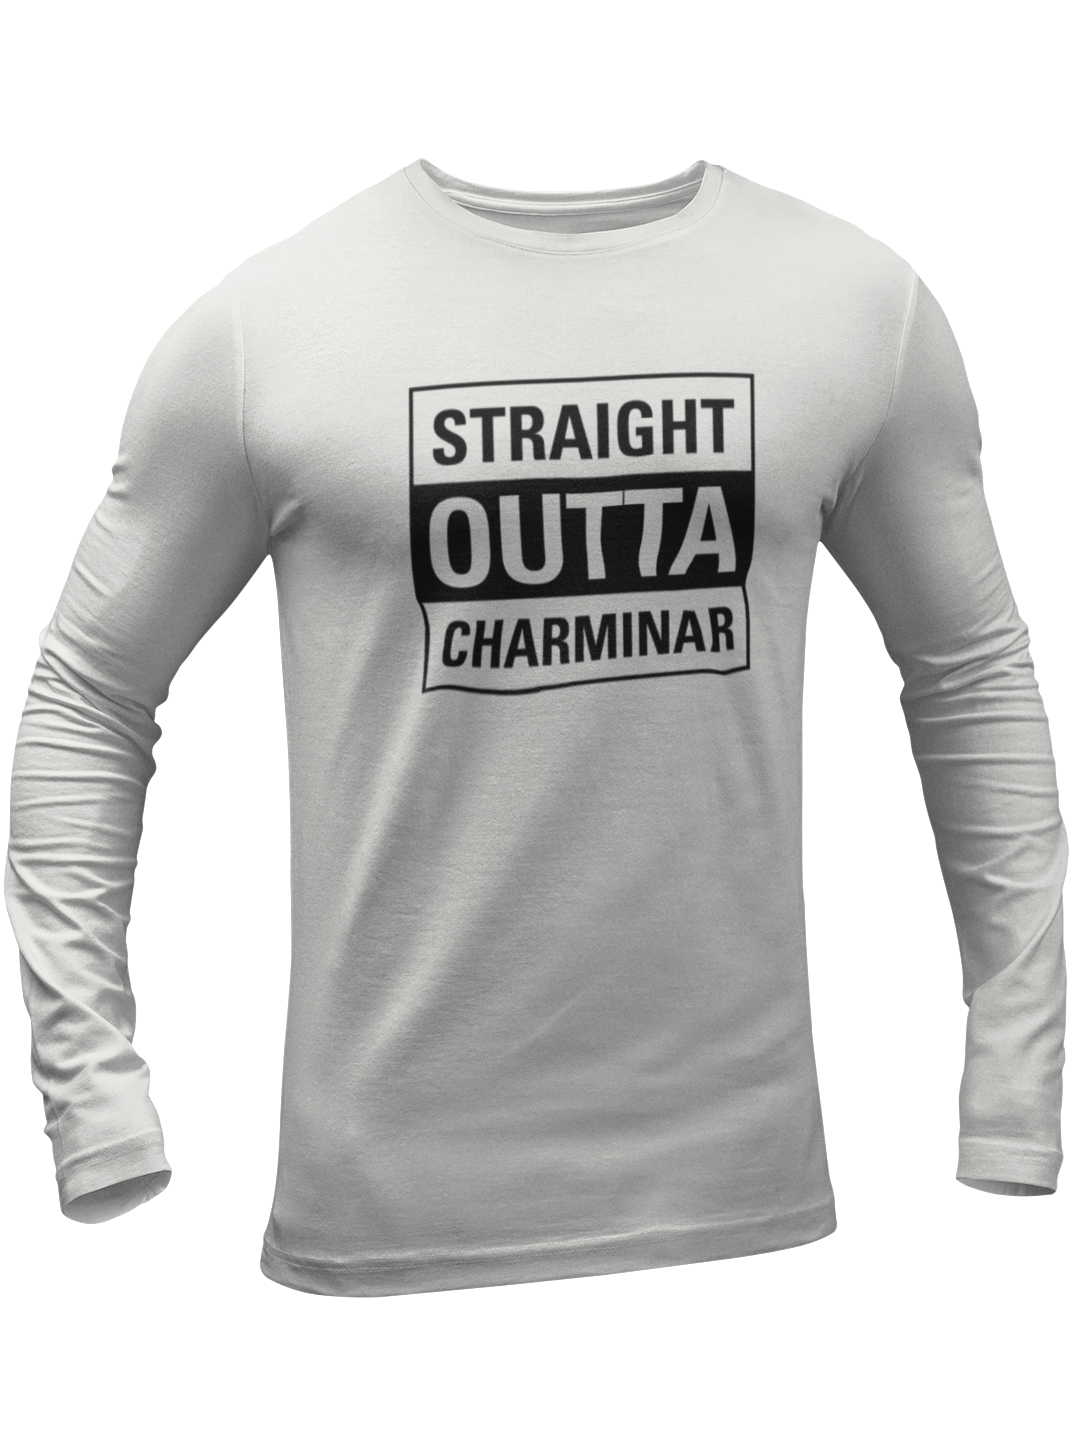 Straight Outta Charminar Full Sleeves T-shirt - ateedude